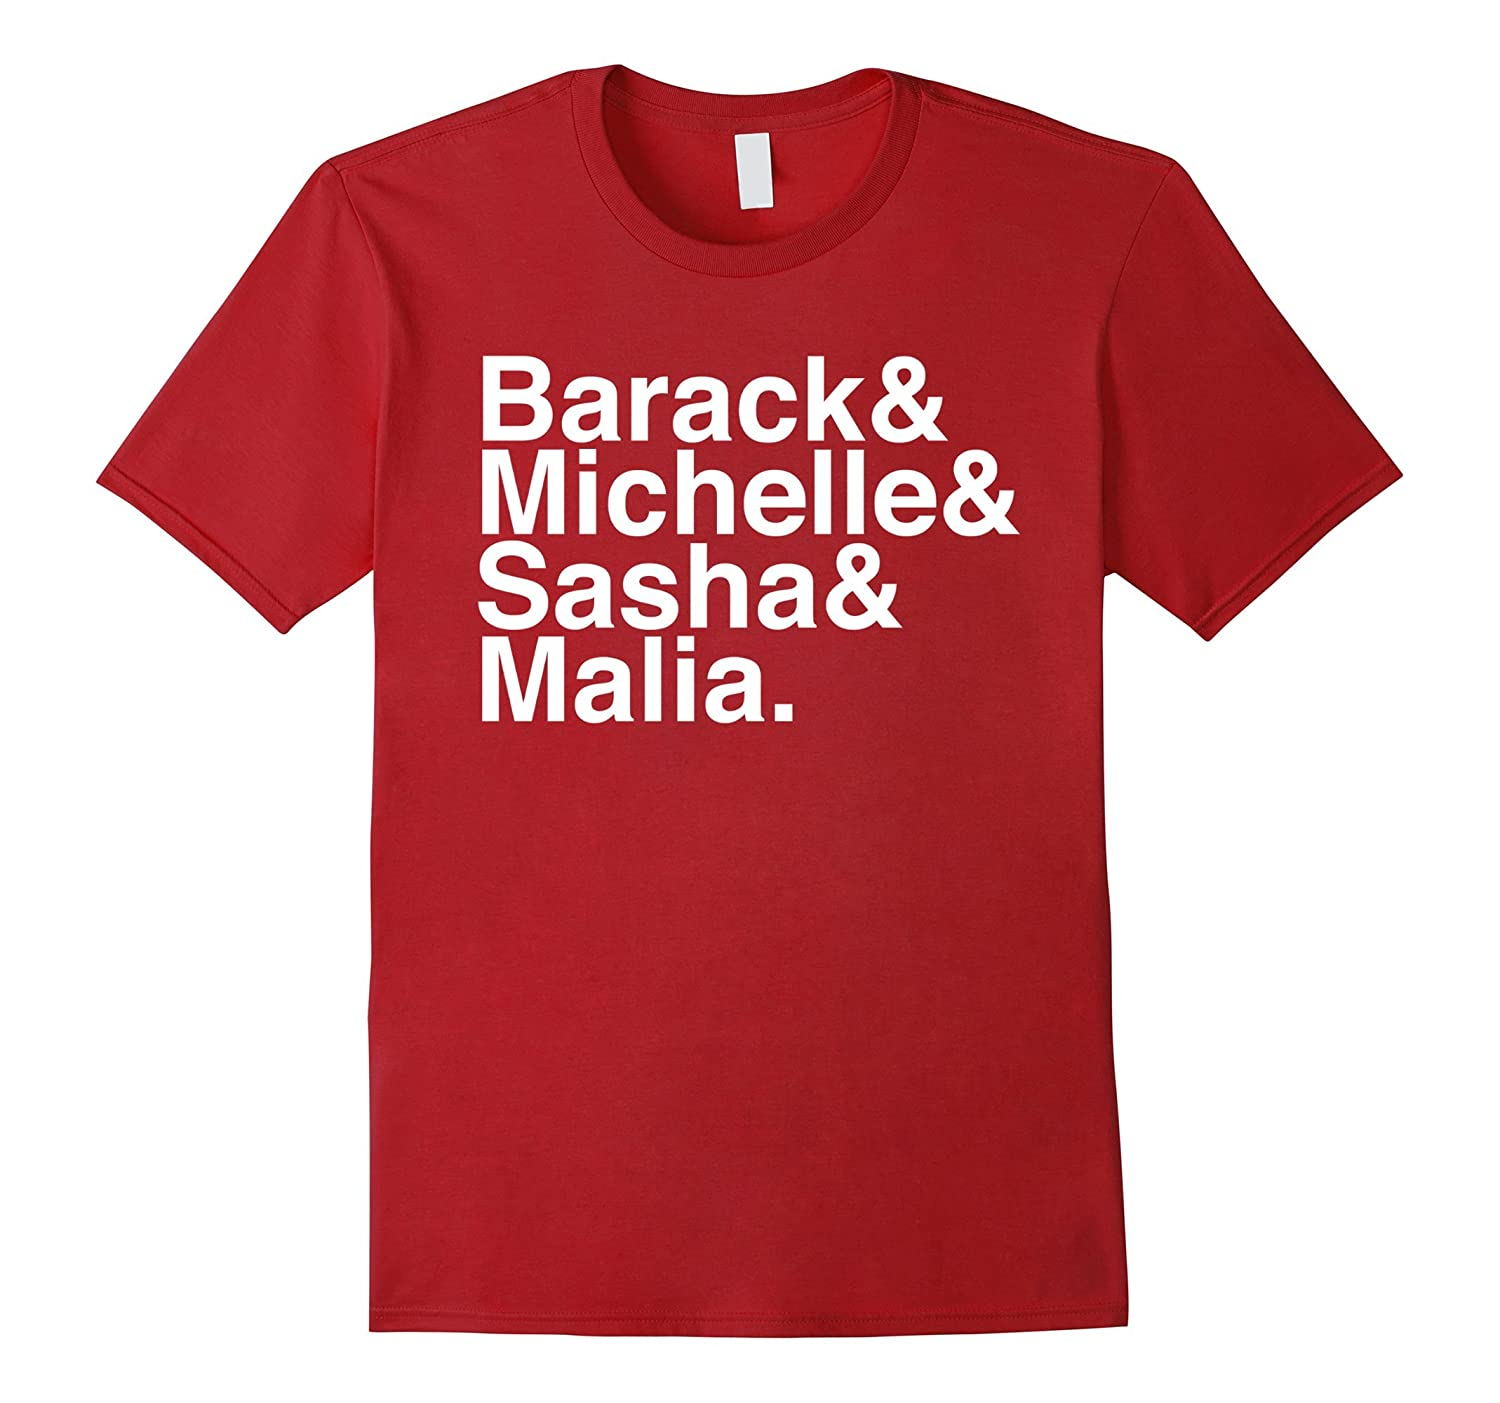 Obama Family Barack & Michelle & Sasha & Malia tee shirt